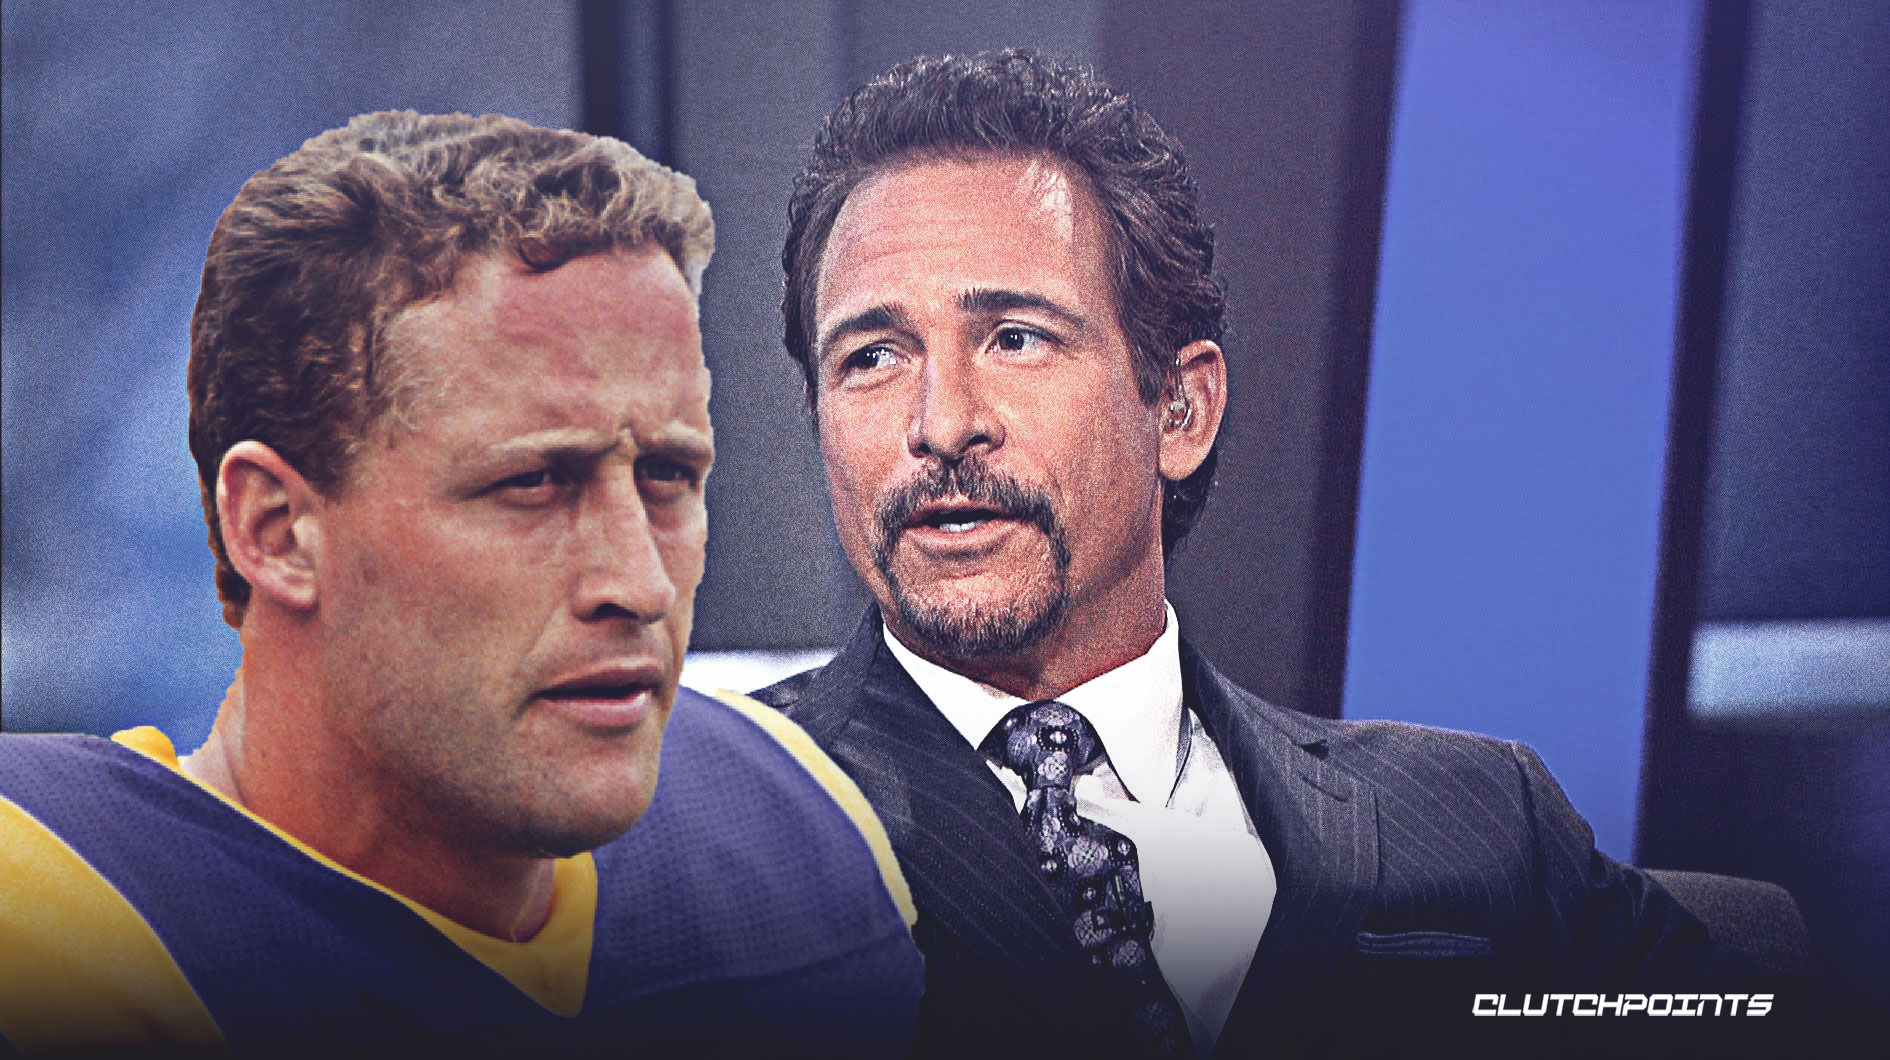 Rams' Jim Everett reflects on incident with Jim Rome